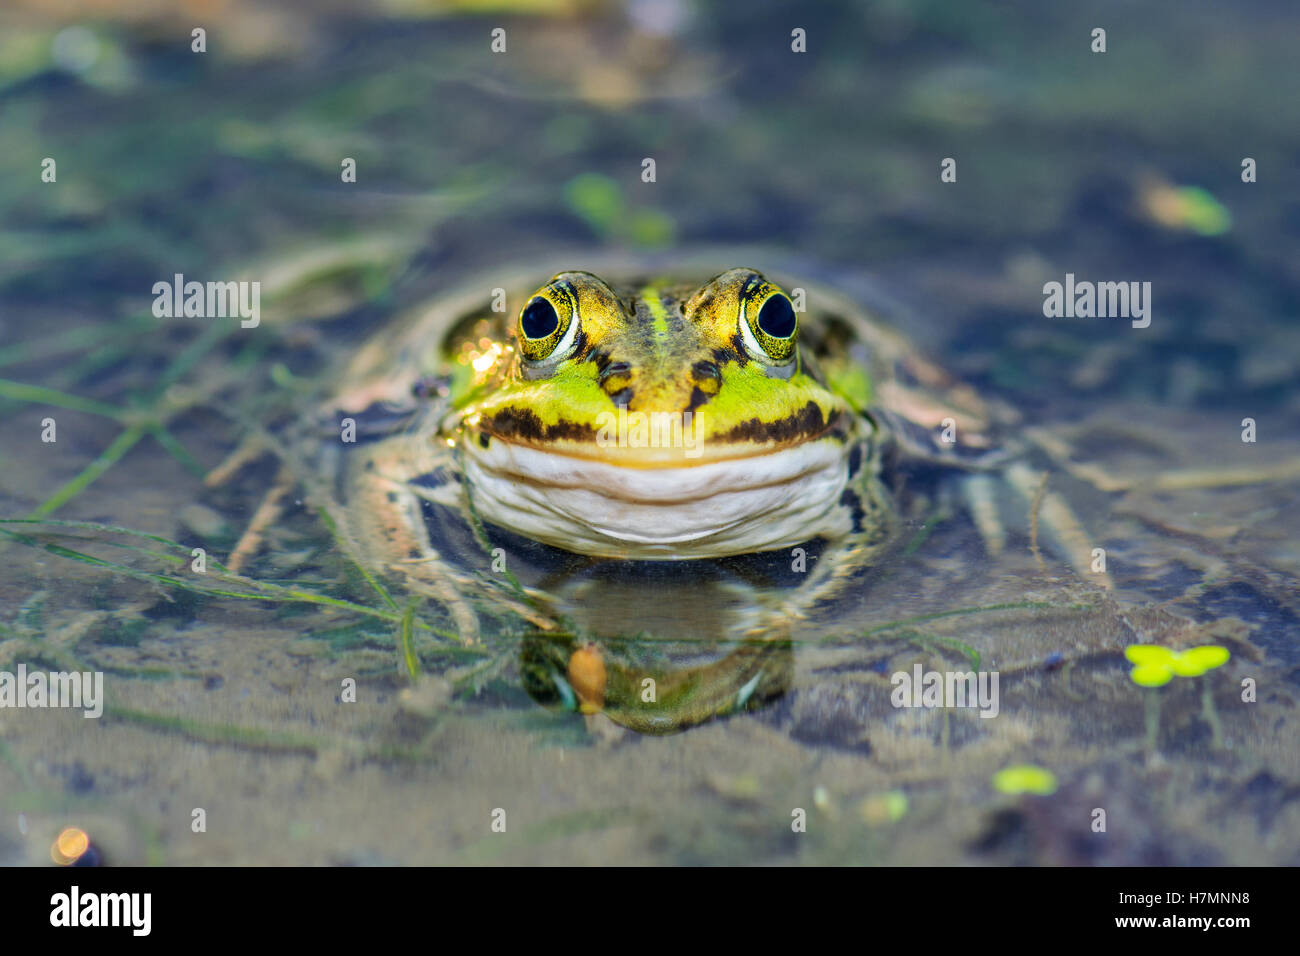 Frog Sitting in Pond - Stock Image